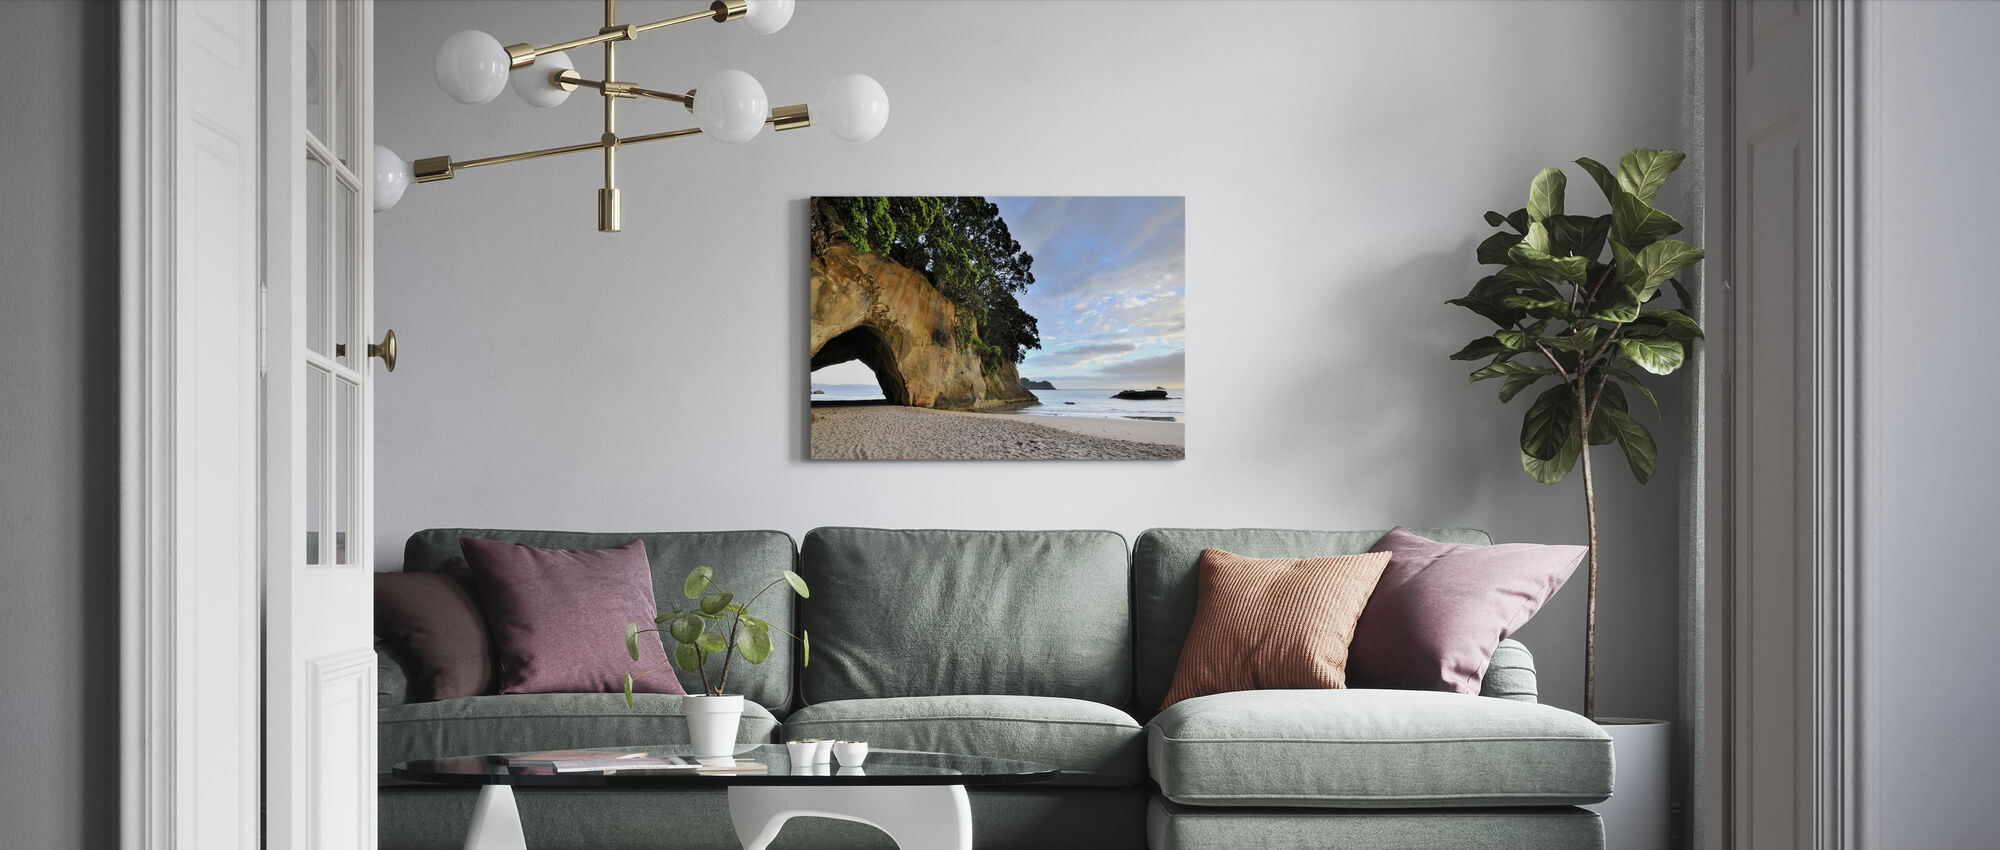 Rock Cave on the Beach - Canvas print - Living Room